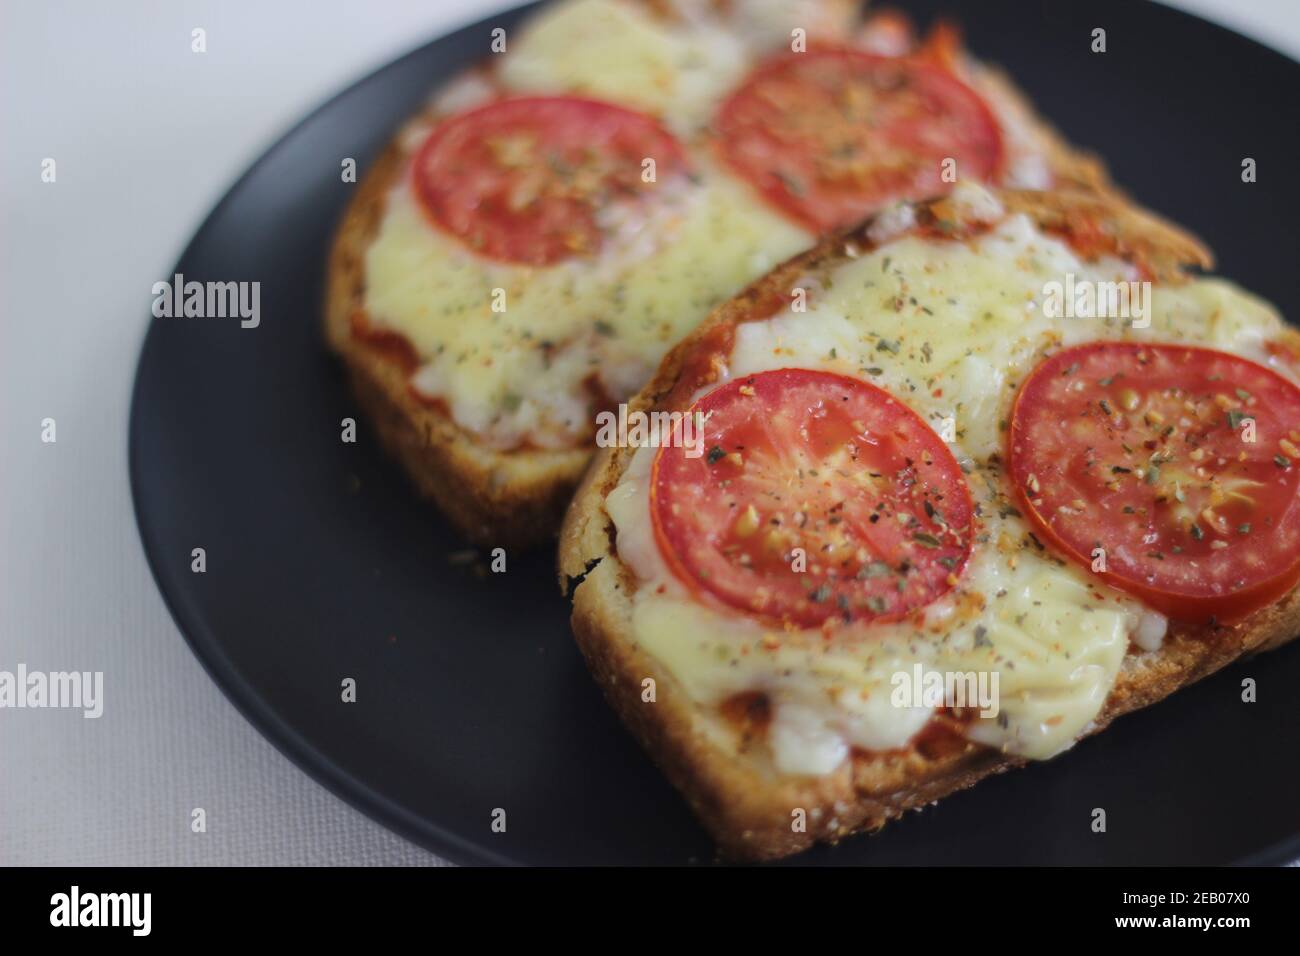 Pizza toast with home baked bread loaf. Shot on white background. Stock Photo